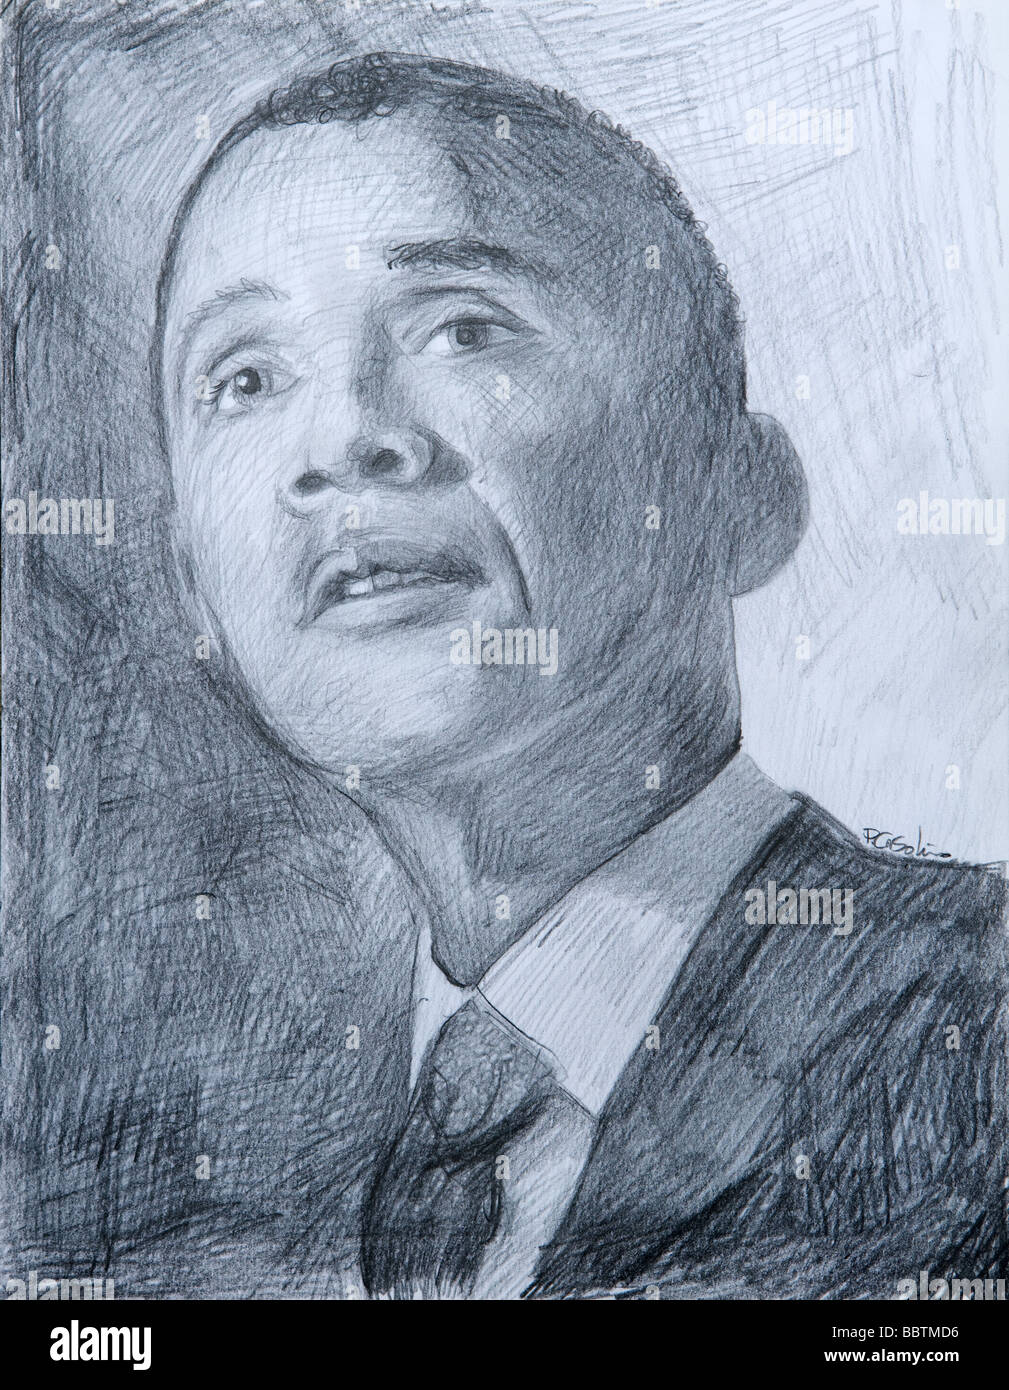 Drawing of US President Barack Obama - Stock Image